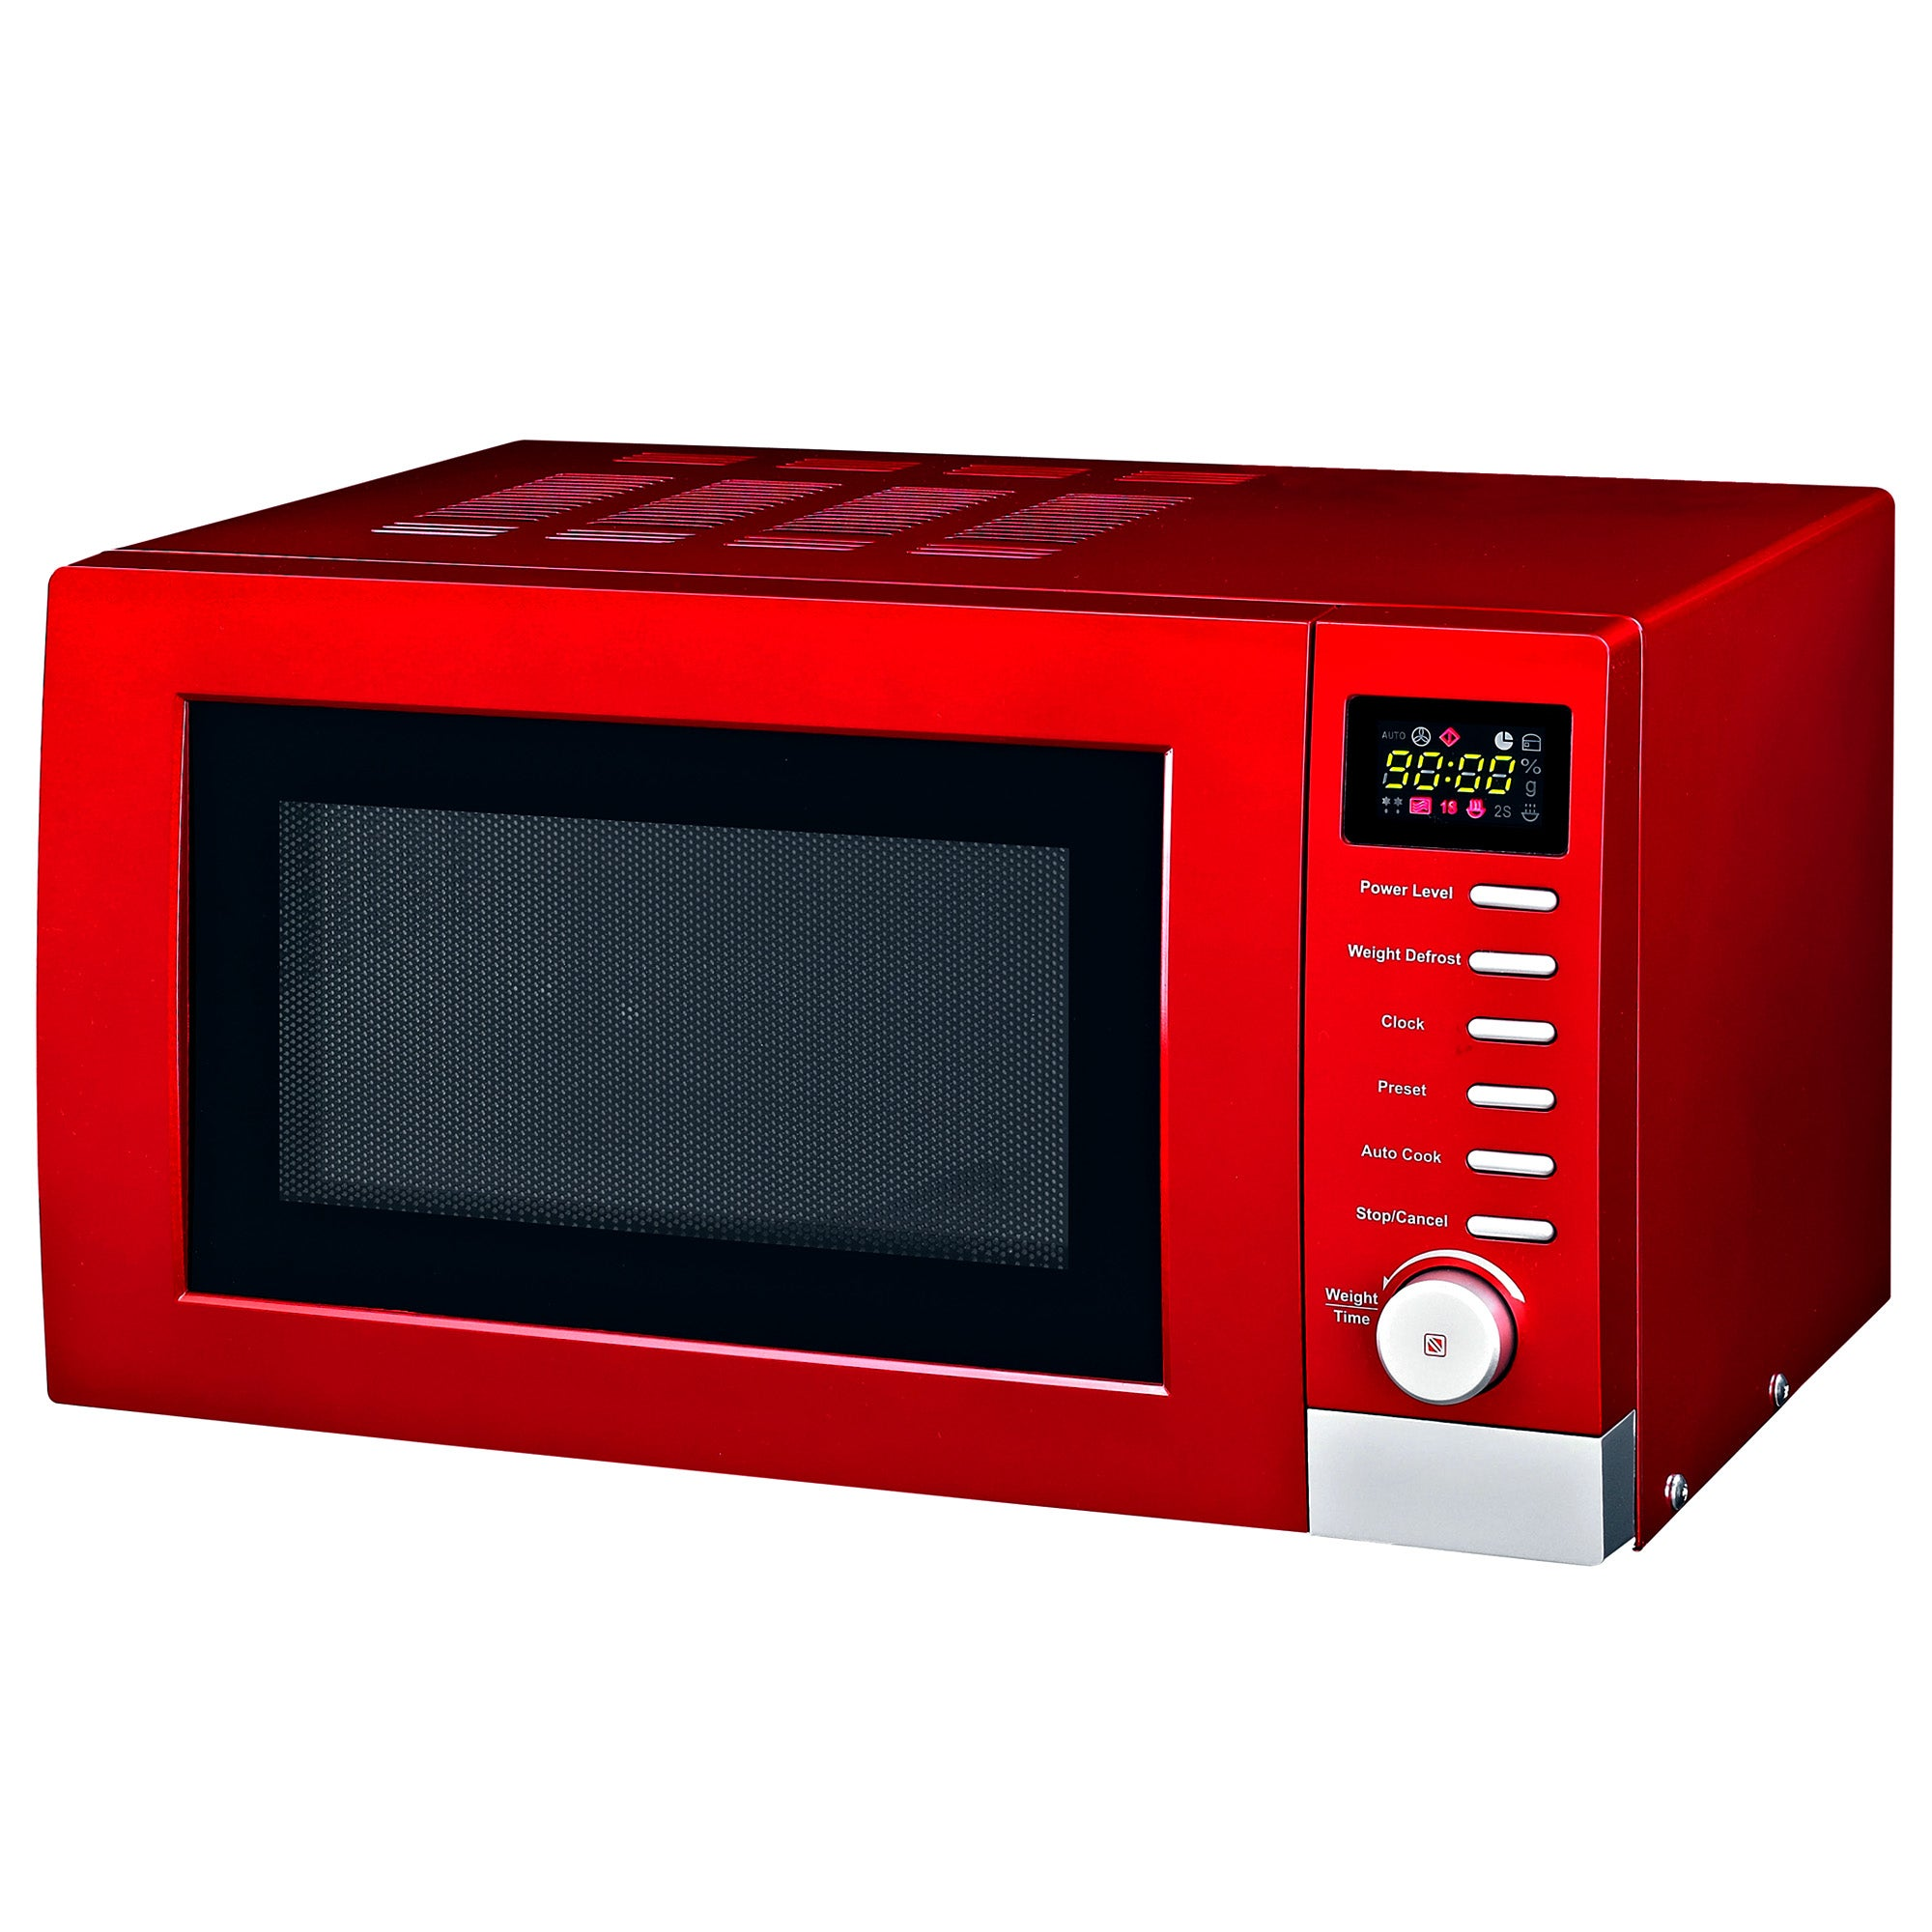 Spectrum Red Digital Microwave